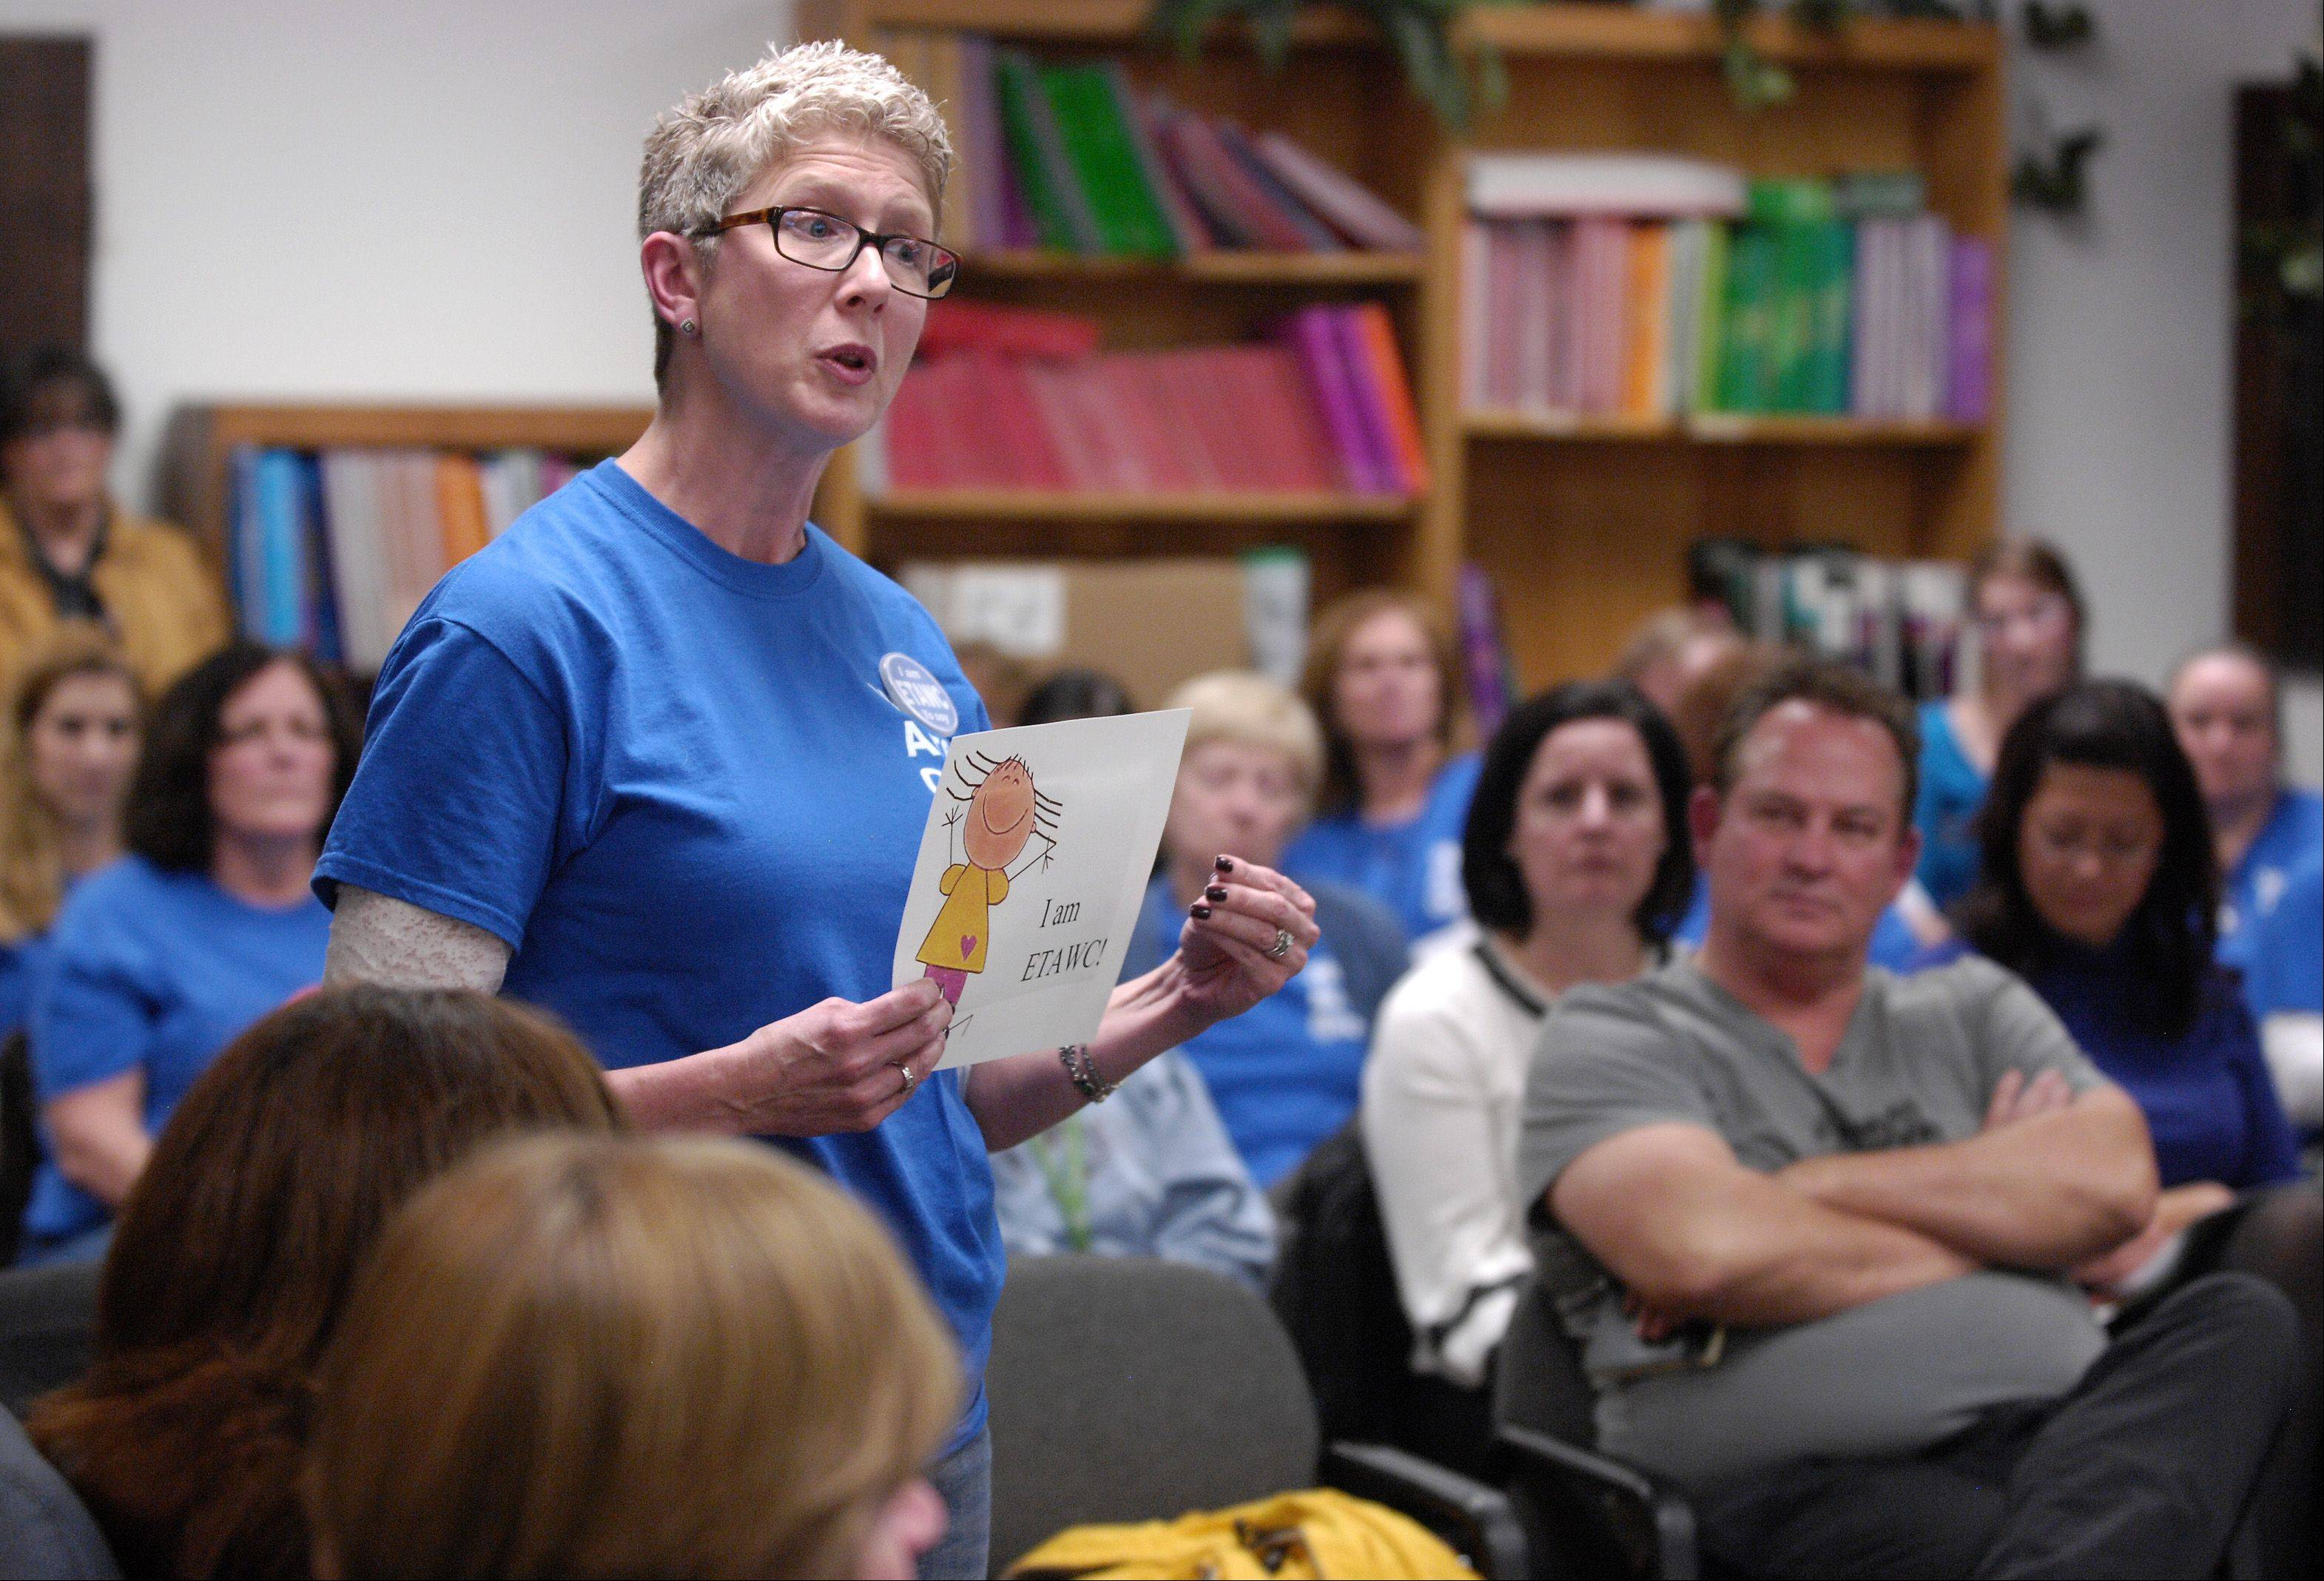 Twenty-six-year veteran teacher Melanie Dixon speaks Thursday night during the West Chicago District 33 board meeting. Dixon was one of 23 teachers who spoke in support of their union, which remains locked in contract negotiations with the board.